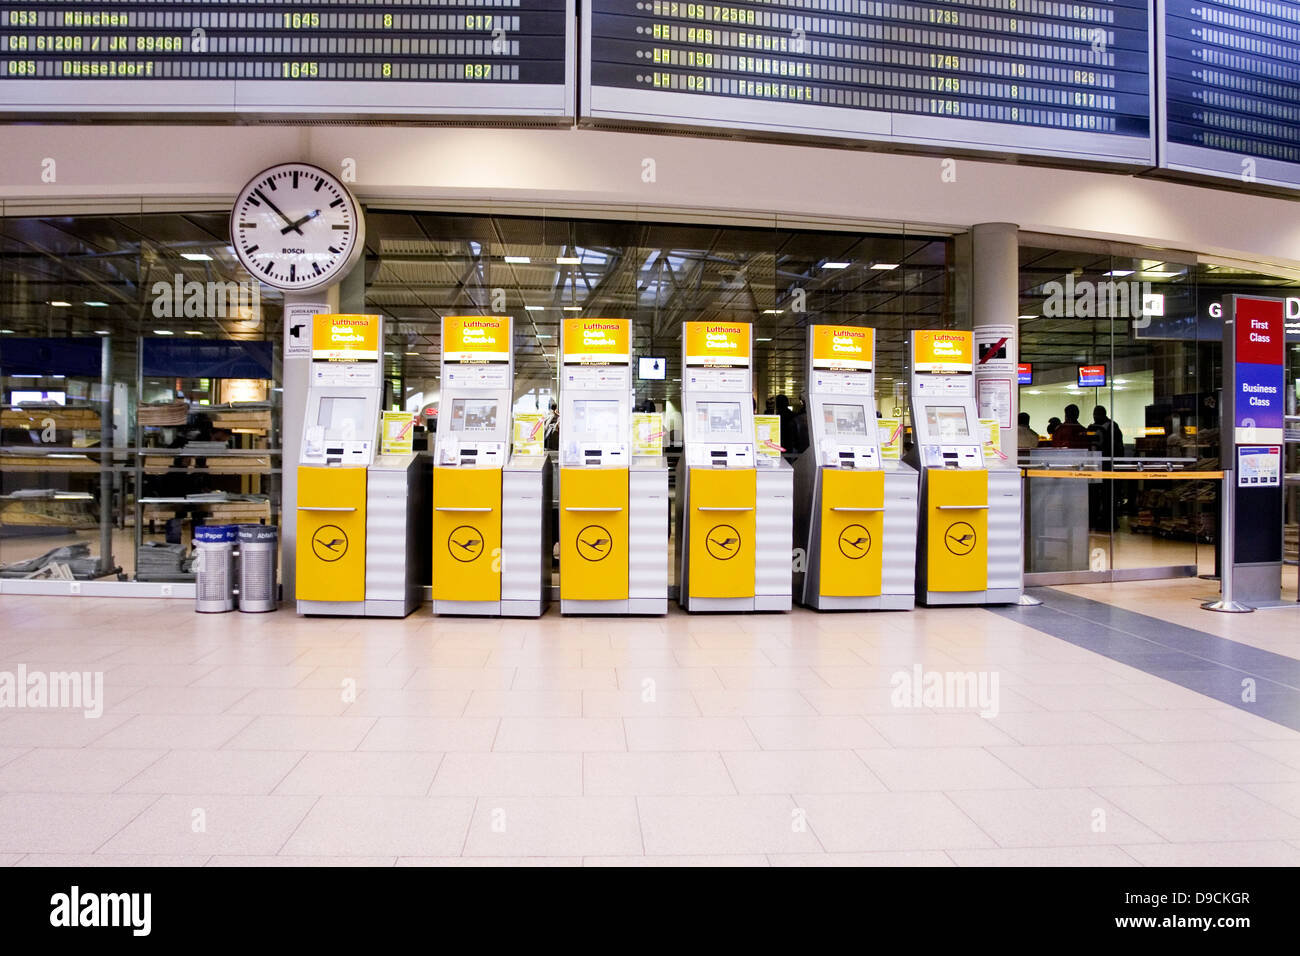 Check in terminals - Stock Image